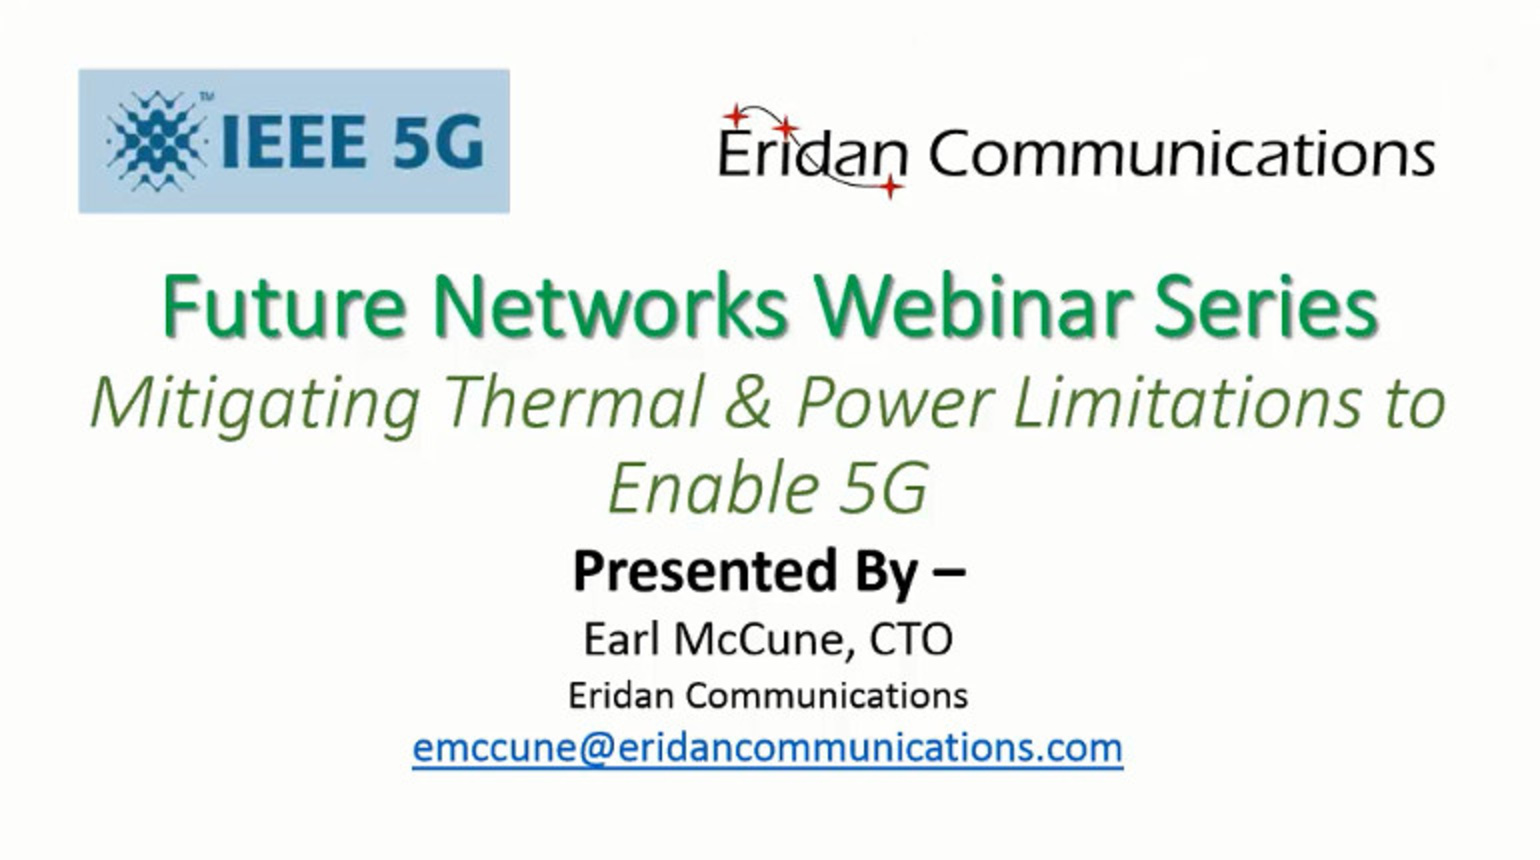 IEEE Future Networks: Mitigating Thermal and Power Limitations to Enable 5G